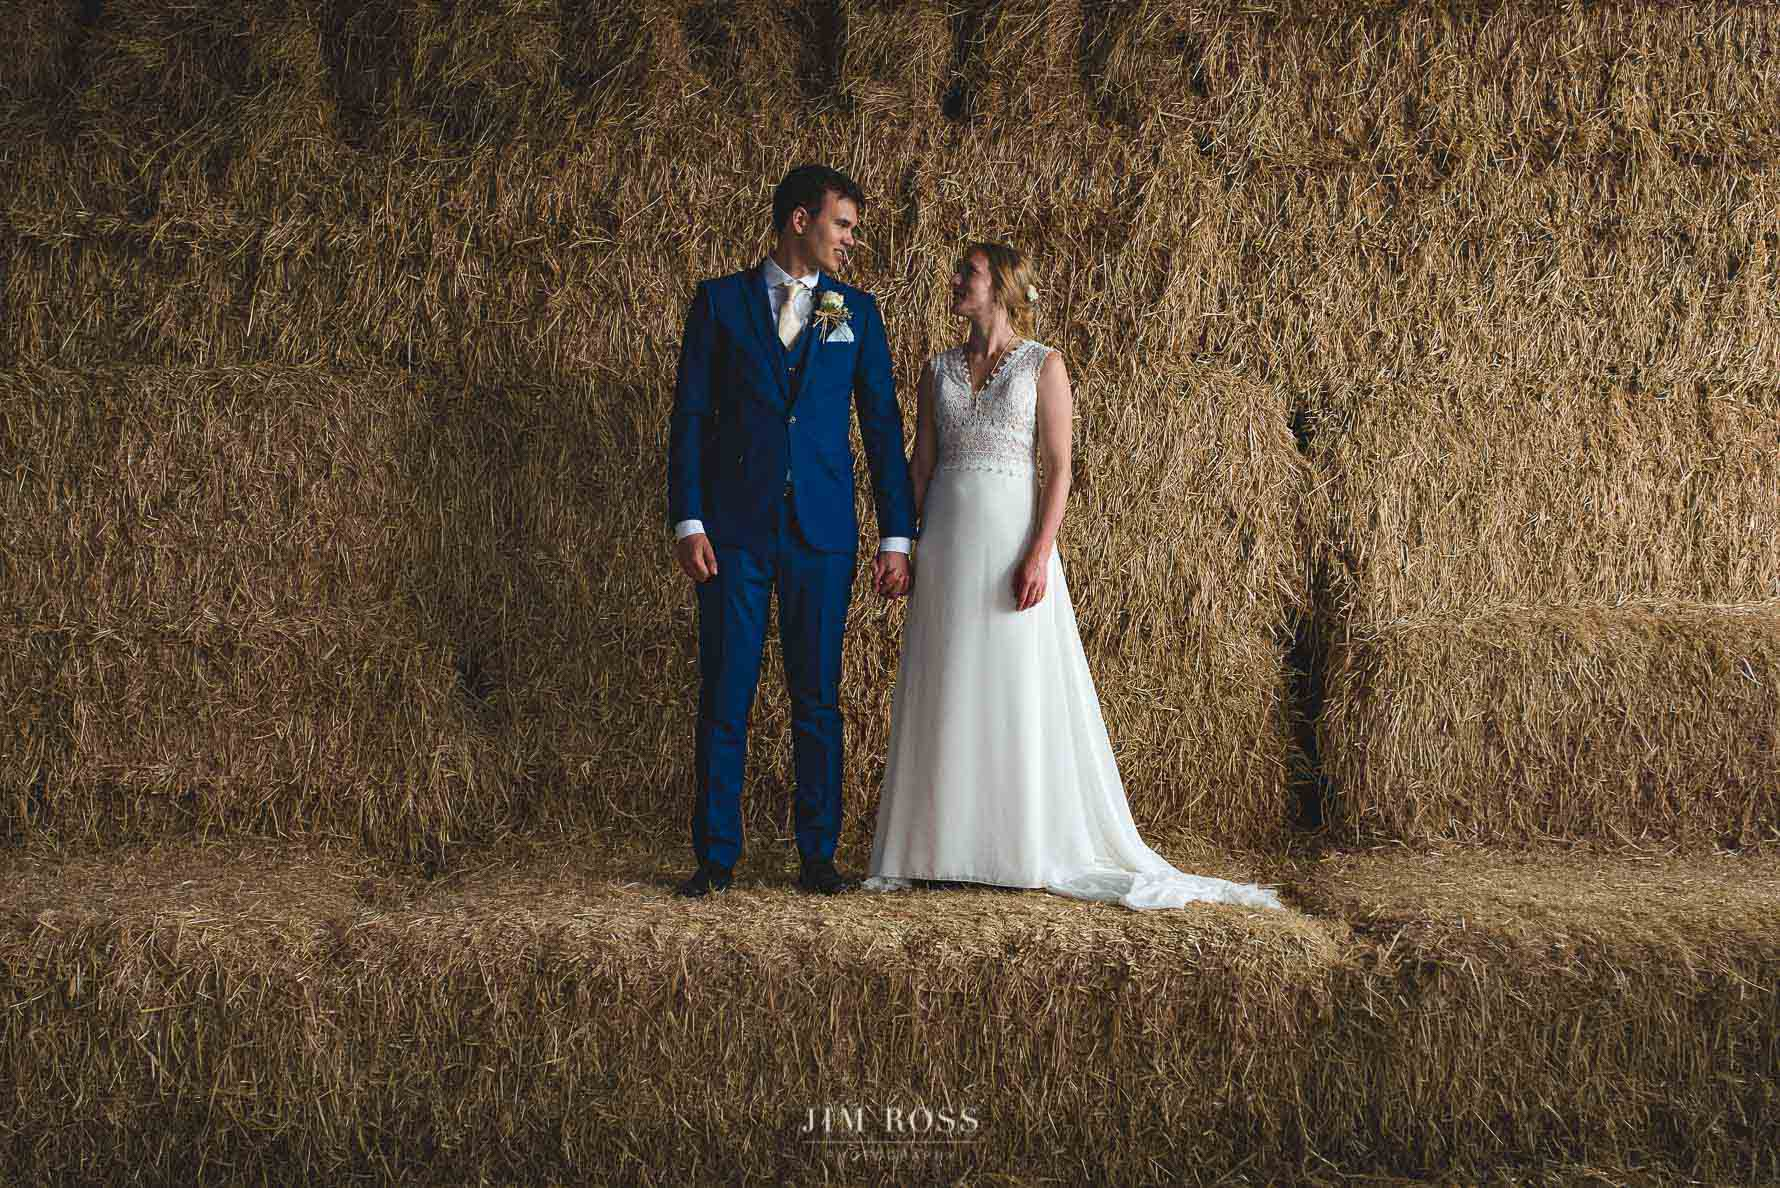 Newlyweds standing on hay bales